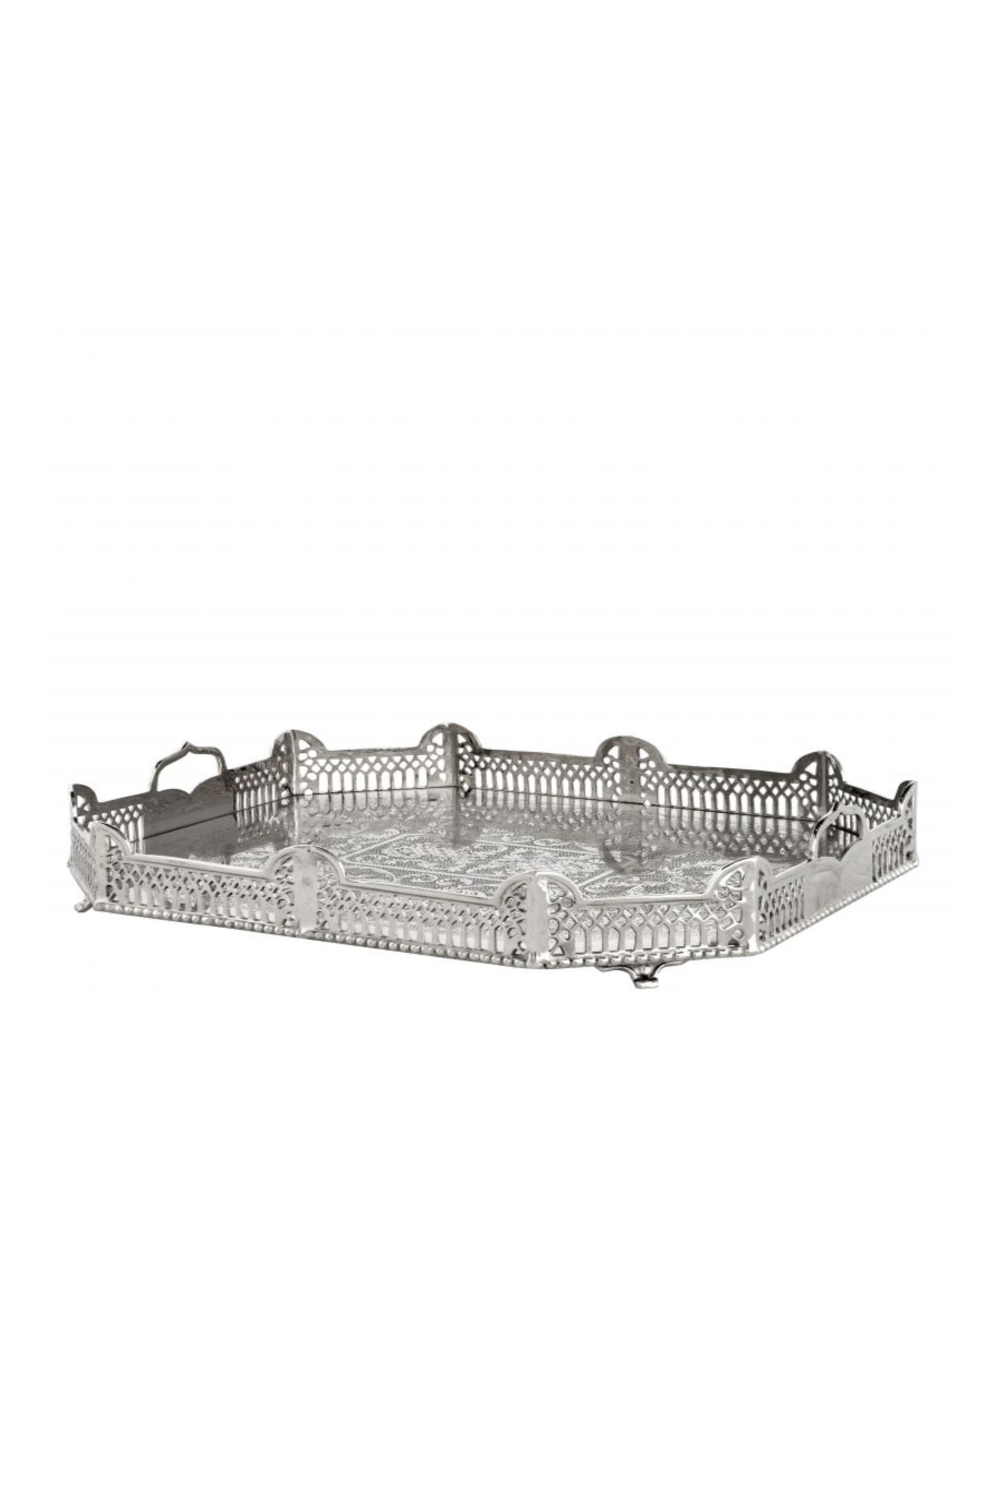 Antique Serving Tray | Eichholtz Boxgrove | OROA Luxury Furniture